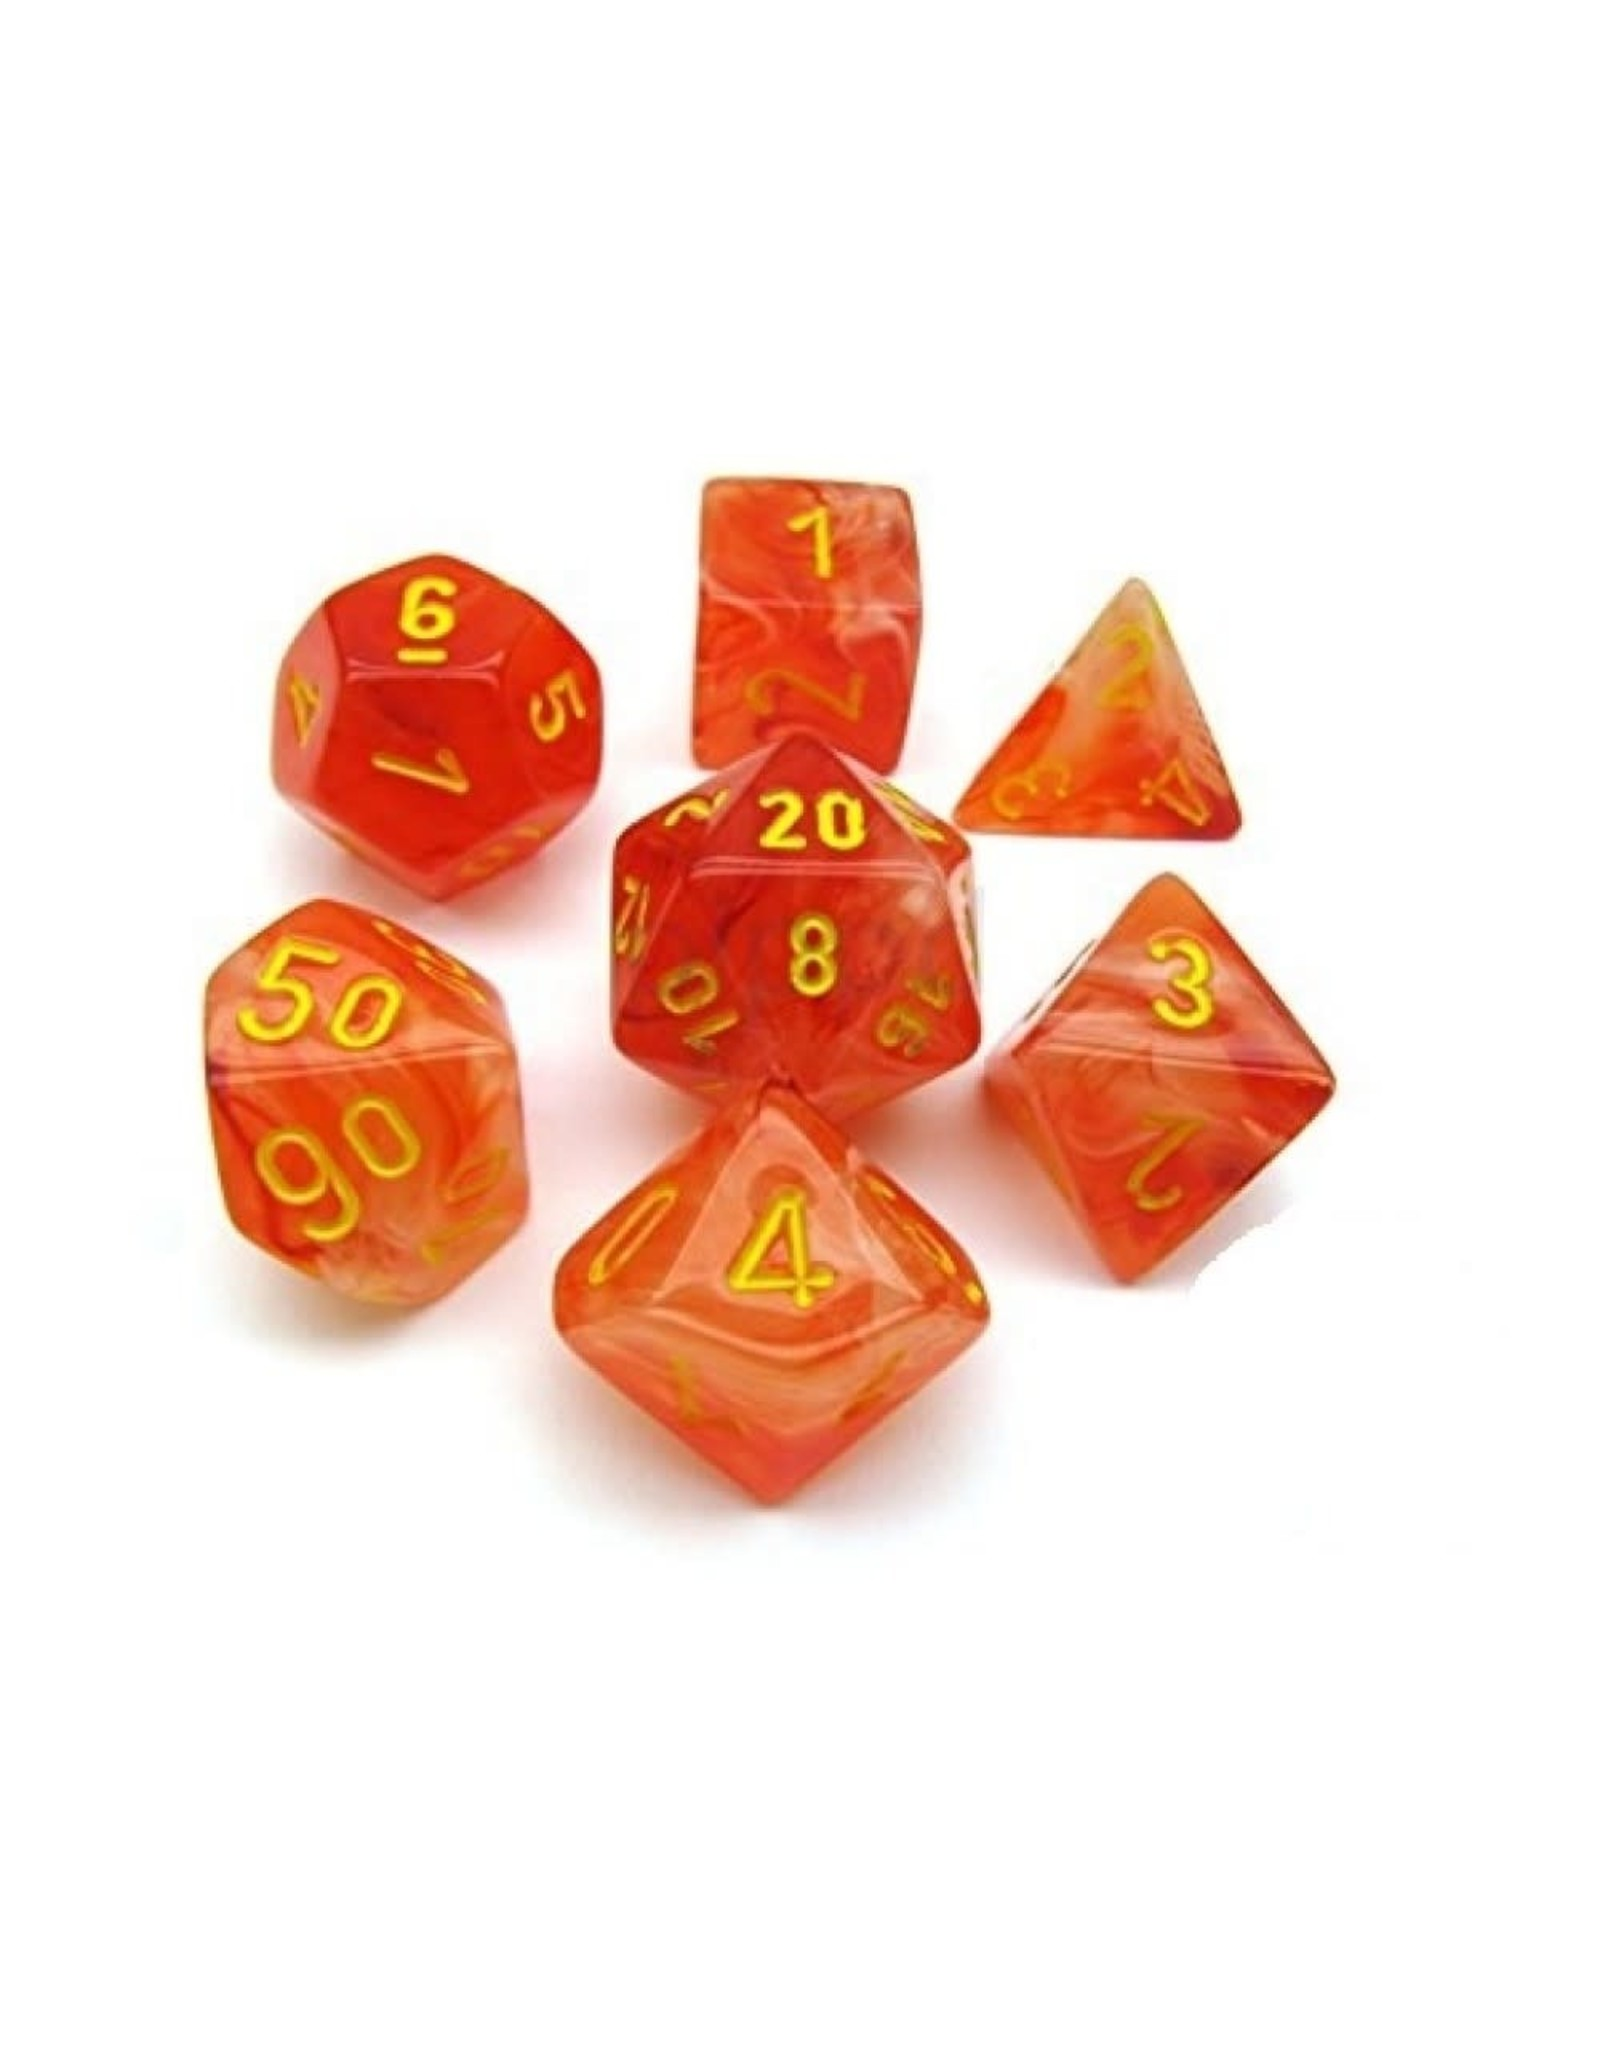 Chessex 7PC RPG DICE GHOSTLY GLOW ORANGE/YELLOW